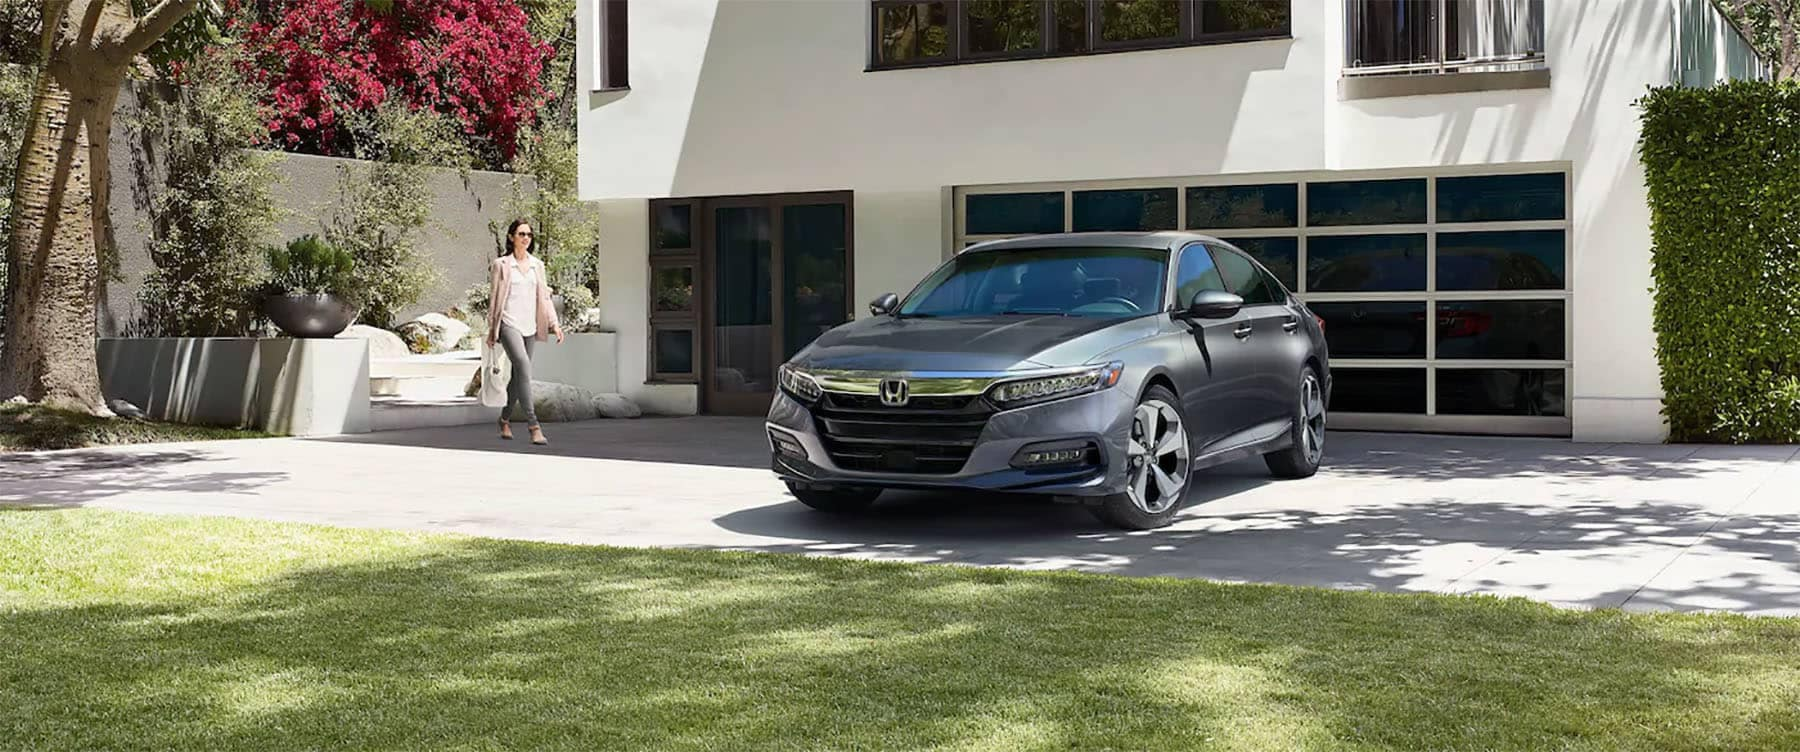 2019 Honda Accord Parked Outside Home